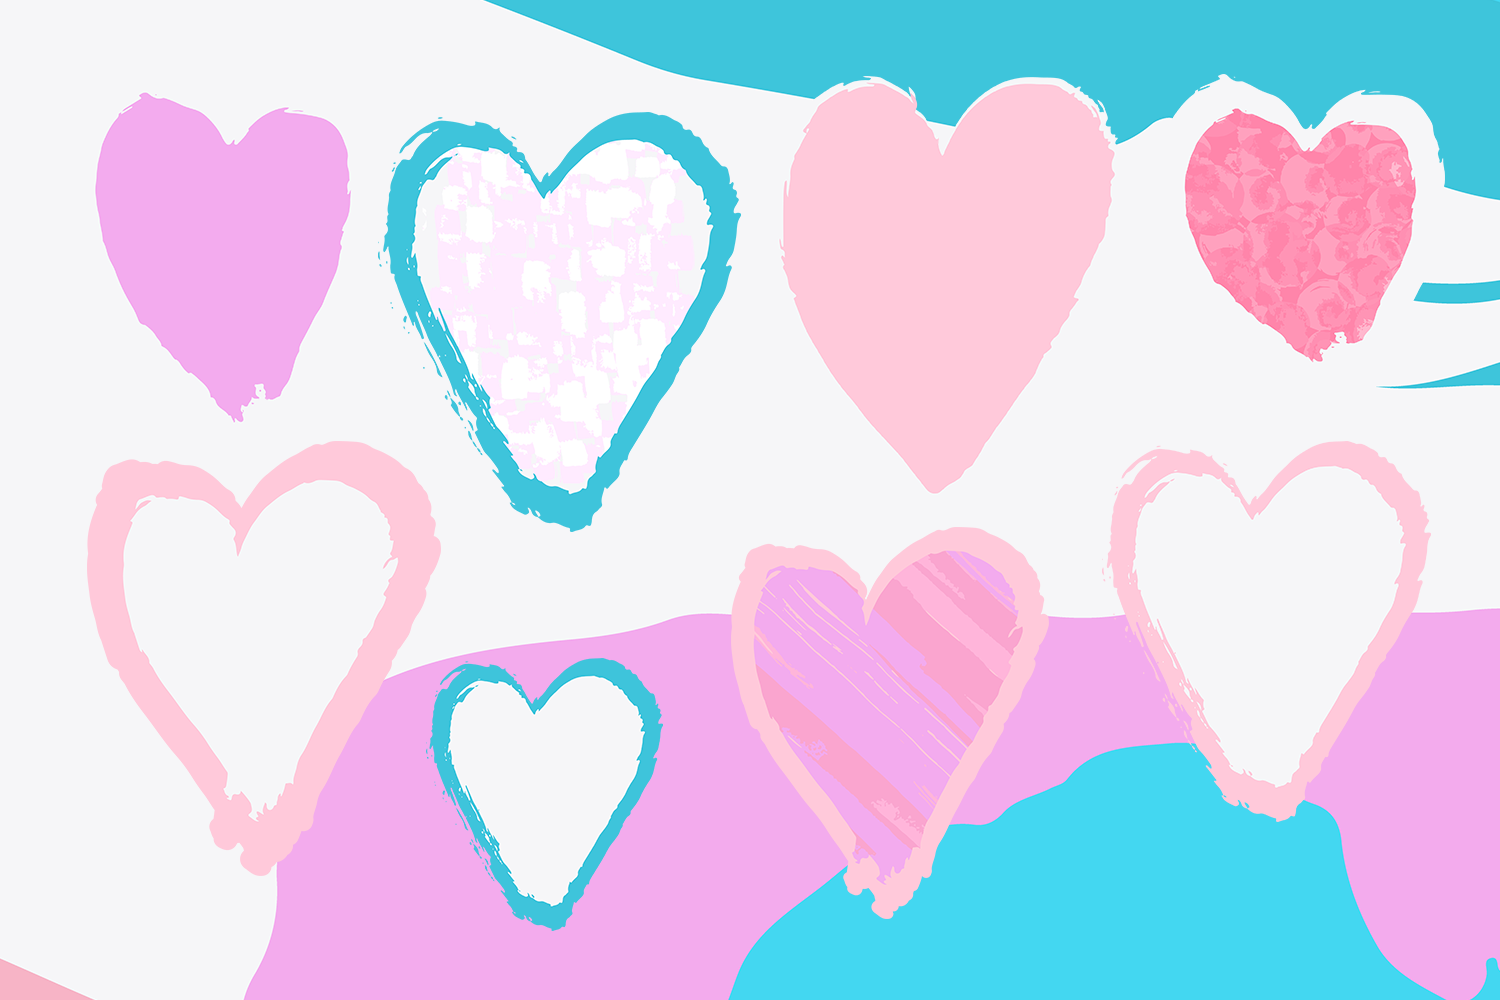 Artistic Love/Backgrounds example image 3